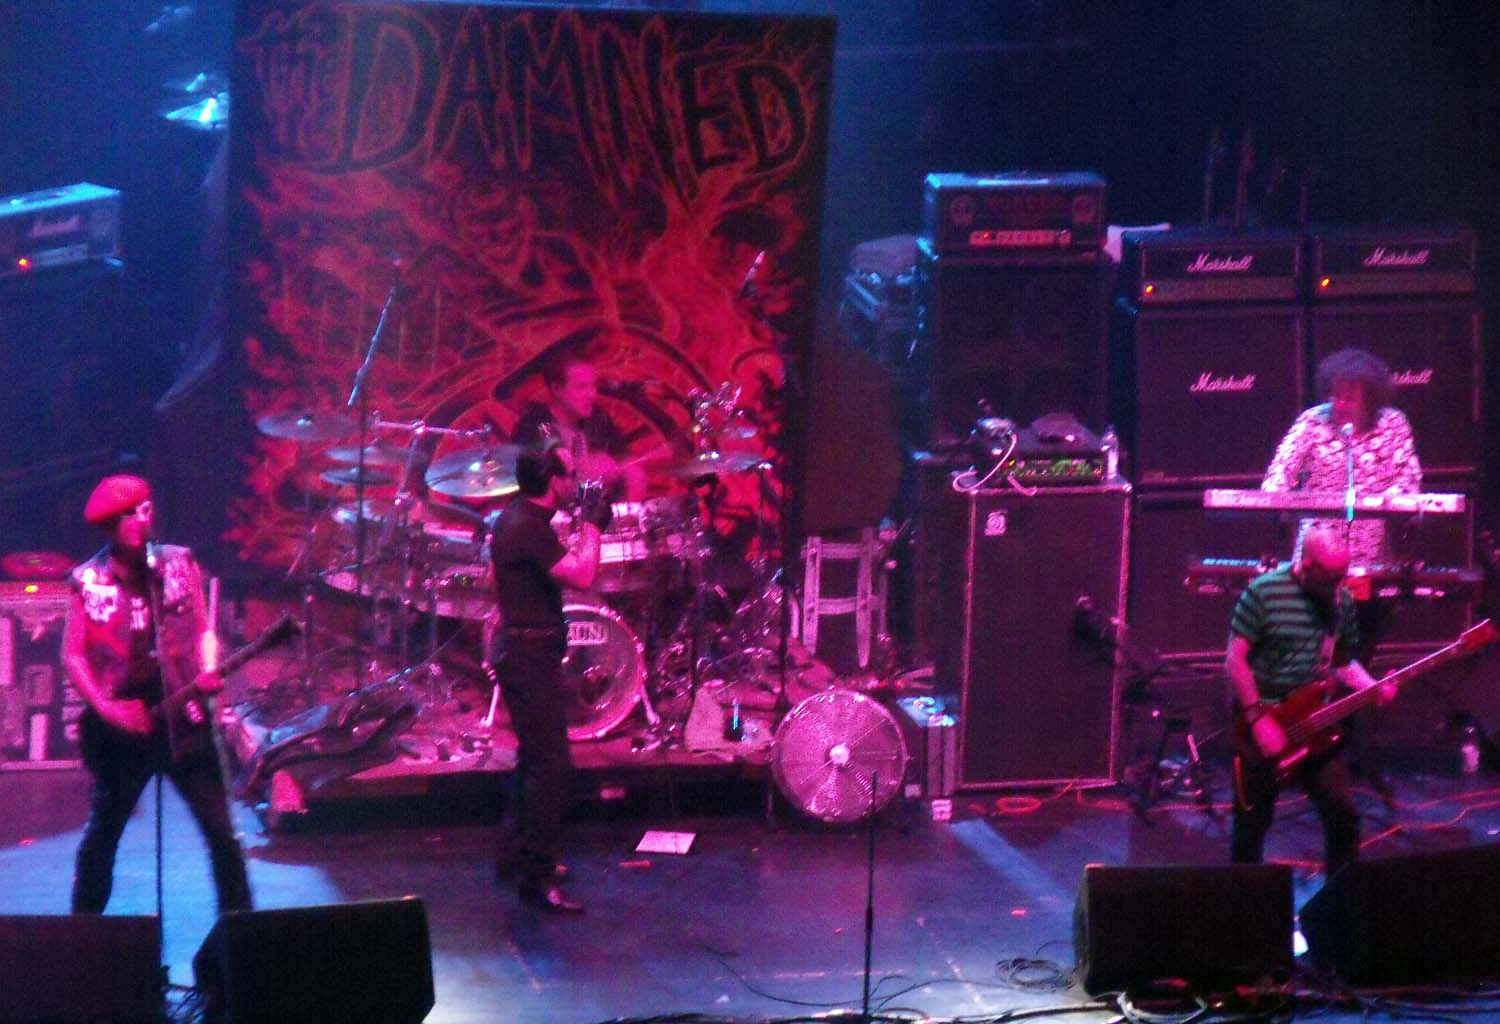 damned,manchester,apollo,2009,reunion,tour,girlschool,Motorhead,england,UK,GB,Captain,sensible,ManchesterApolly,ardwick,venue,gig,Dave,Vanian,Monty,Oxy,Moron,Stu,West,pinch,punk,1977,stage,stiff,buy6,rock,punkrock,rockers,365days,music,musician,live,performer,player,event,signed,band,group,lighting,anbiant,tonysmith,tony,smith,hotpics,hotpic,hotpick,hotpicks,s1500,bands,concert,concerts,musicians,gigs,performing,playing,hotpix!